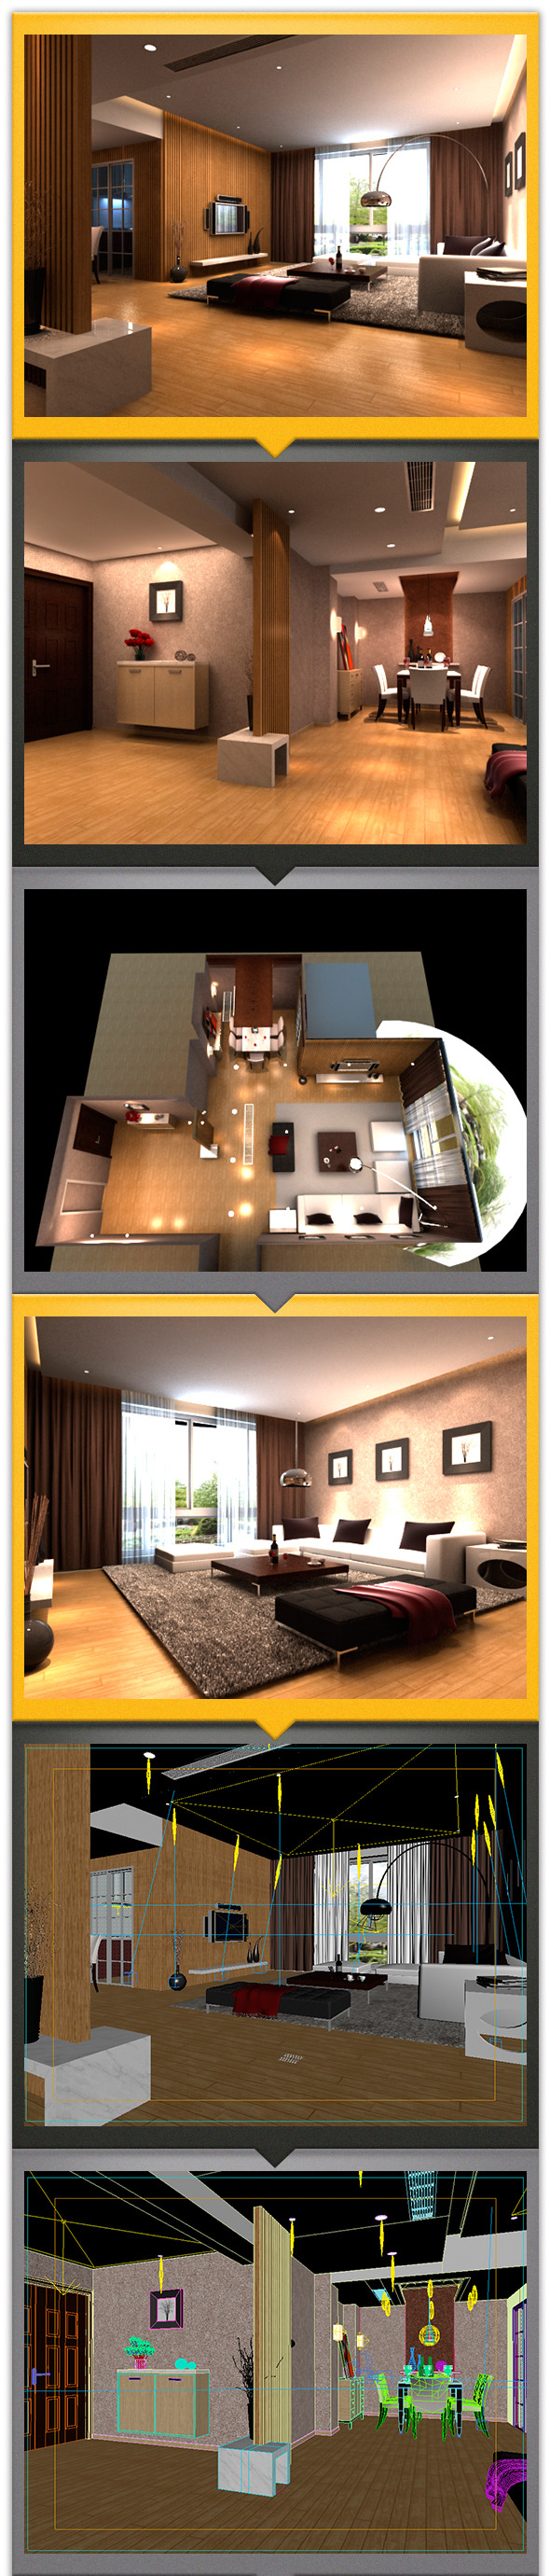 Modern interiors with living room and dining room - 3DOcean Item for Sale